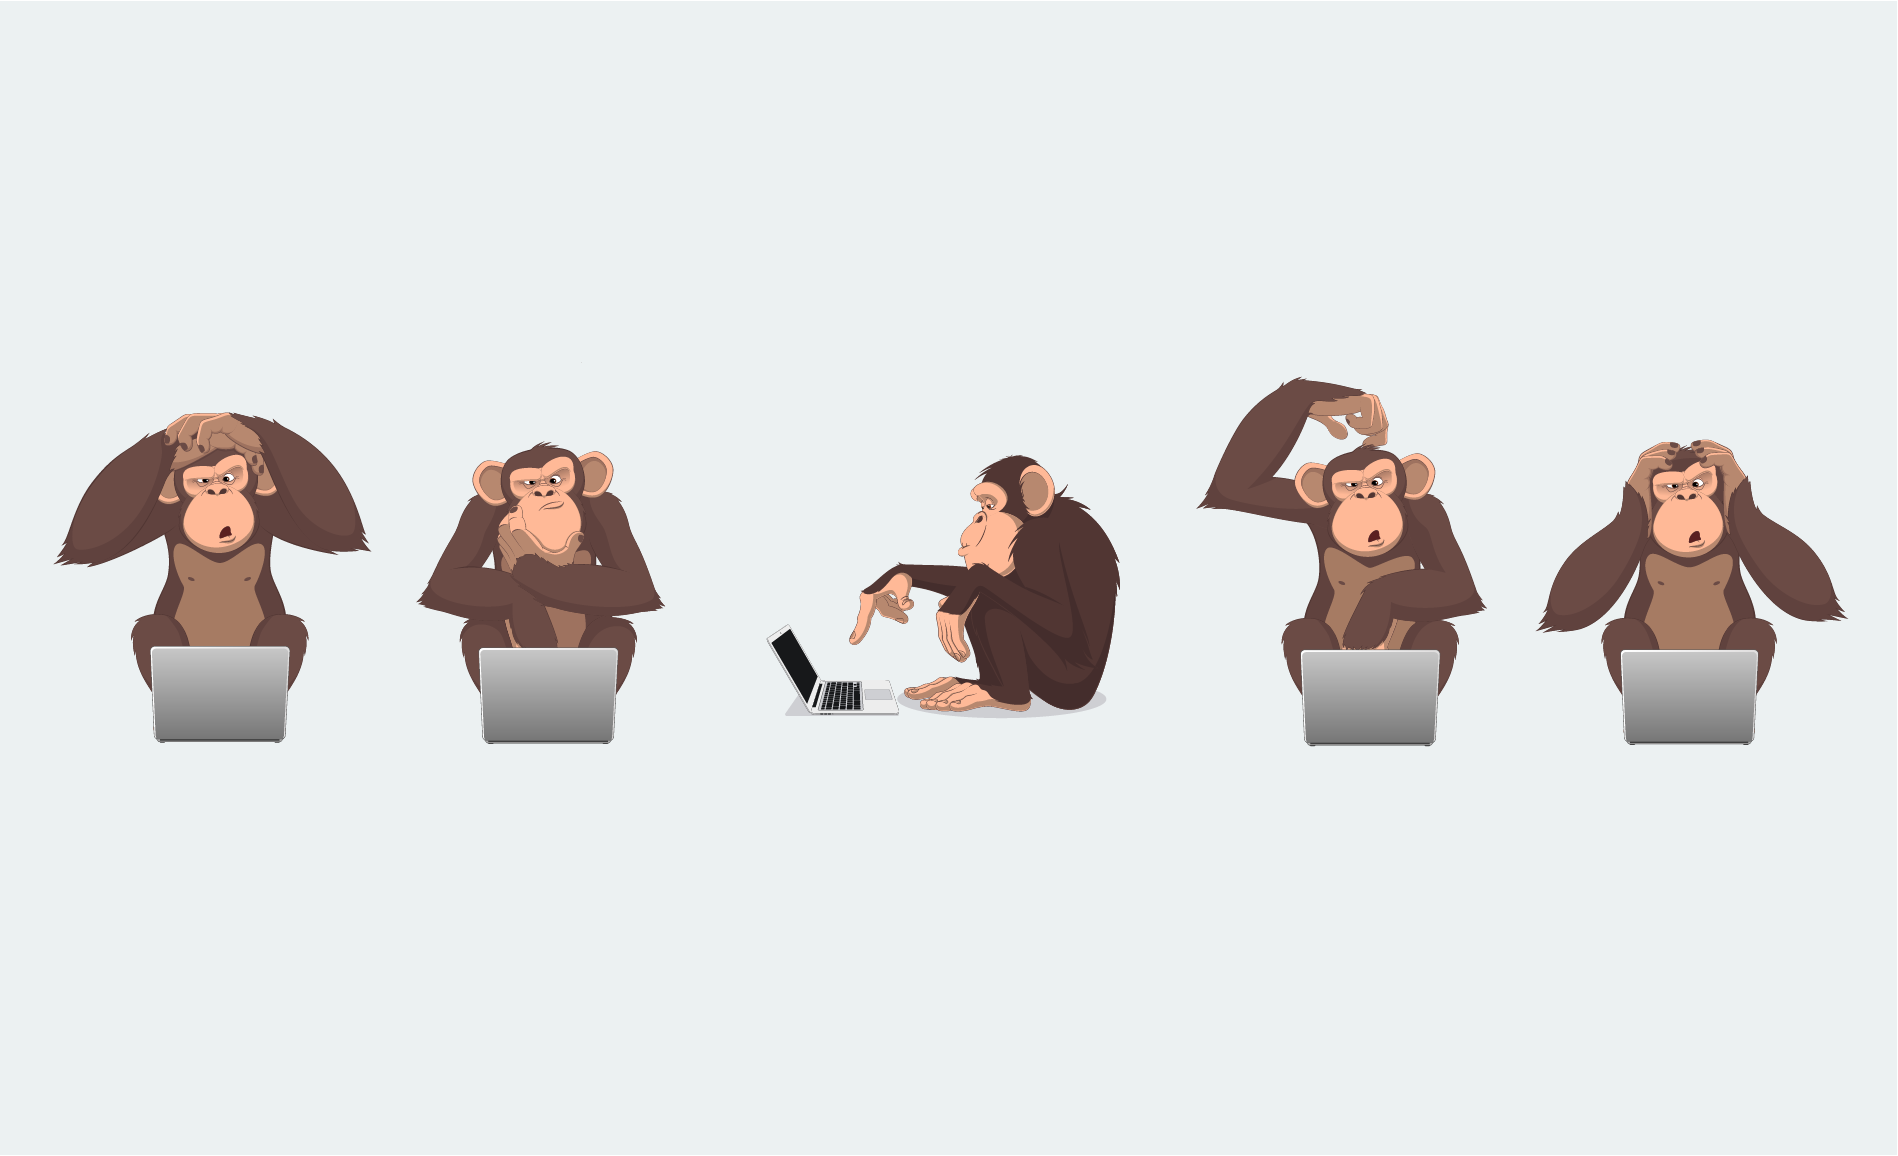 The Five Monkeys Experiment & Its Lessons for Your Organization